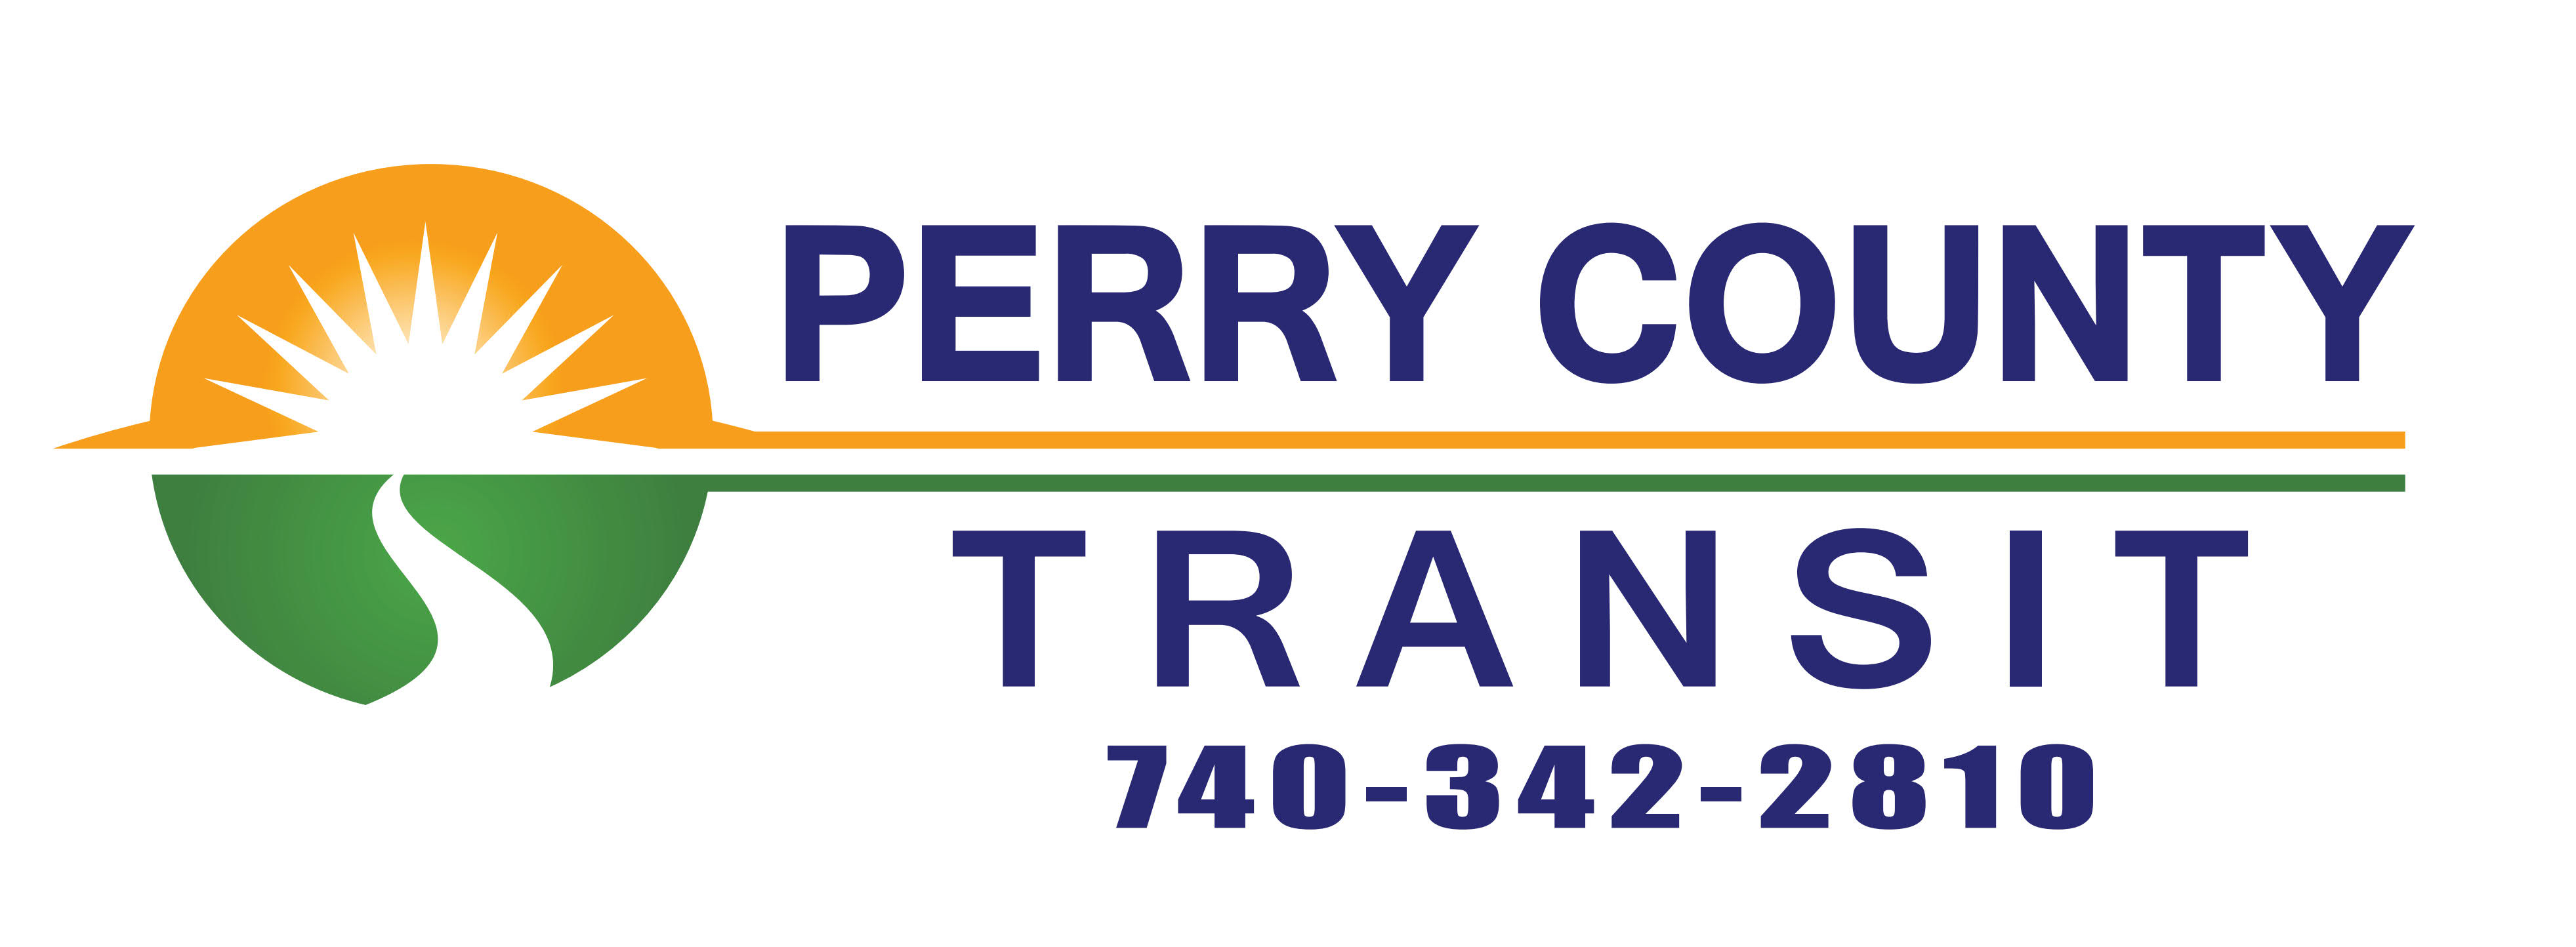 Perry County Transit will resume fare collection/fees effective March 8, 2021